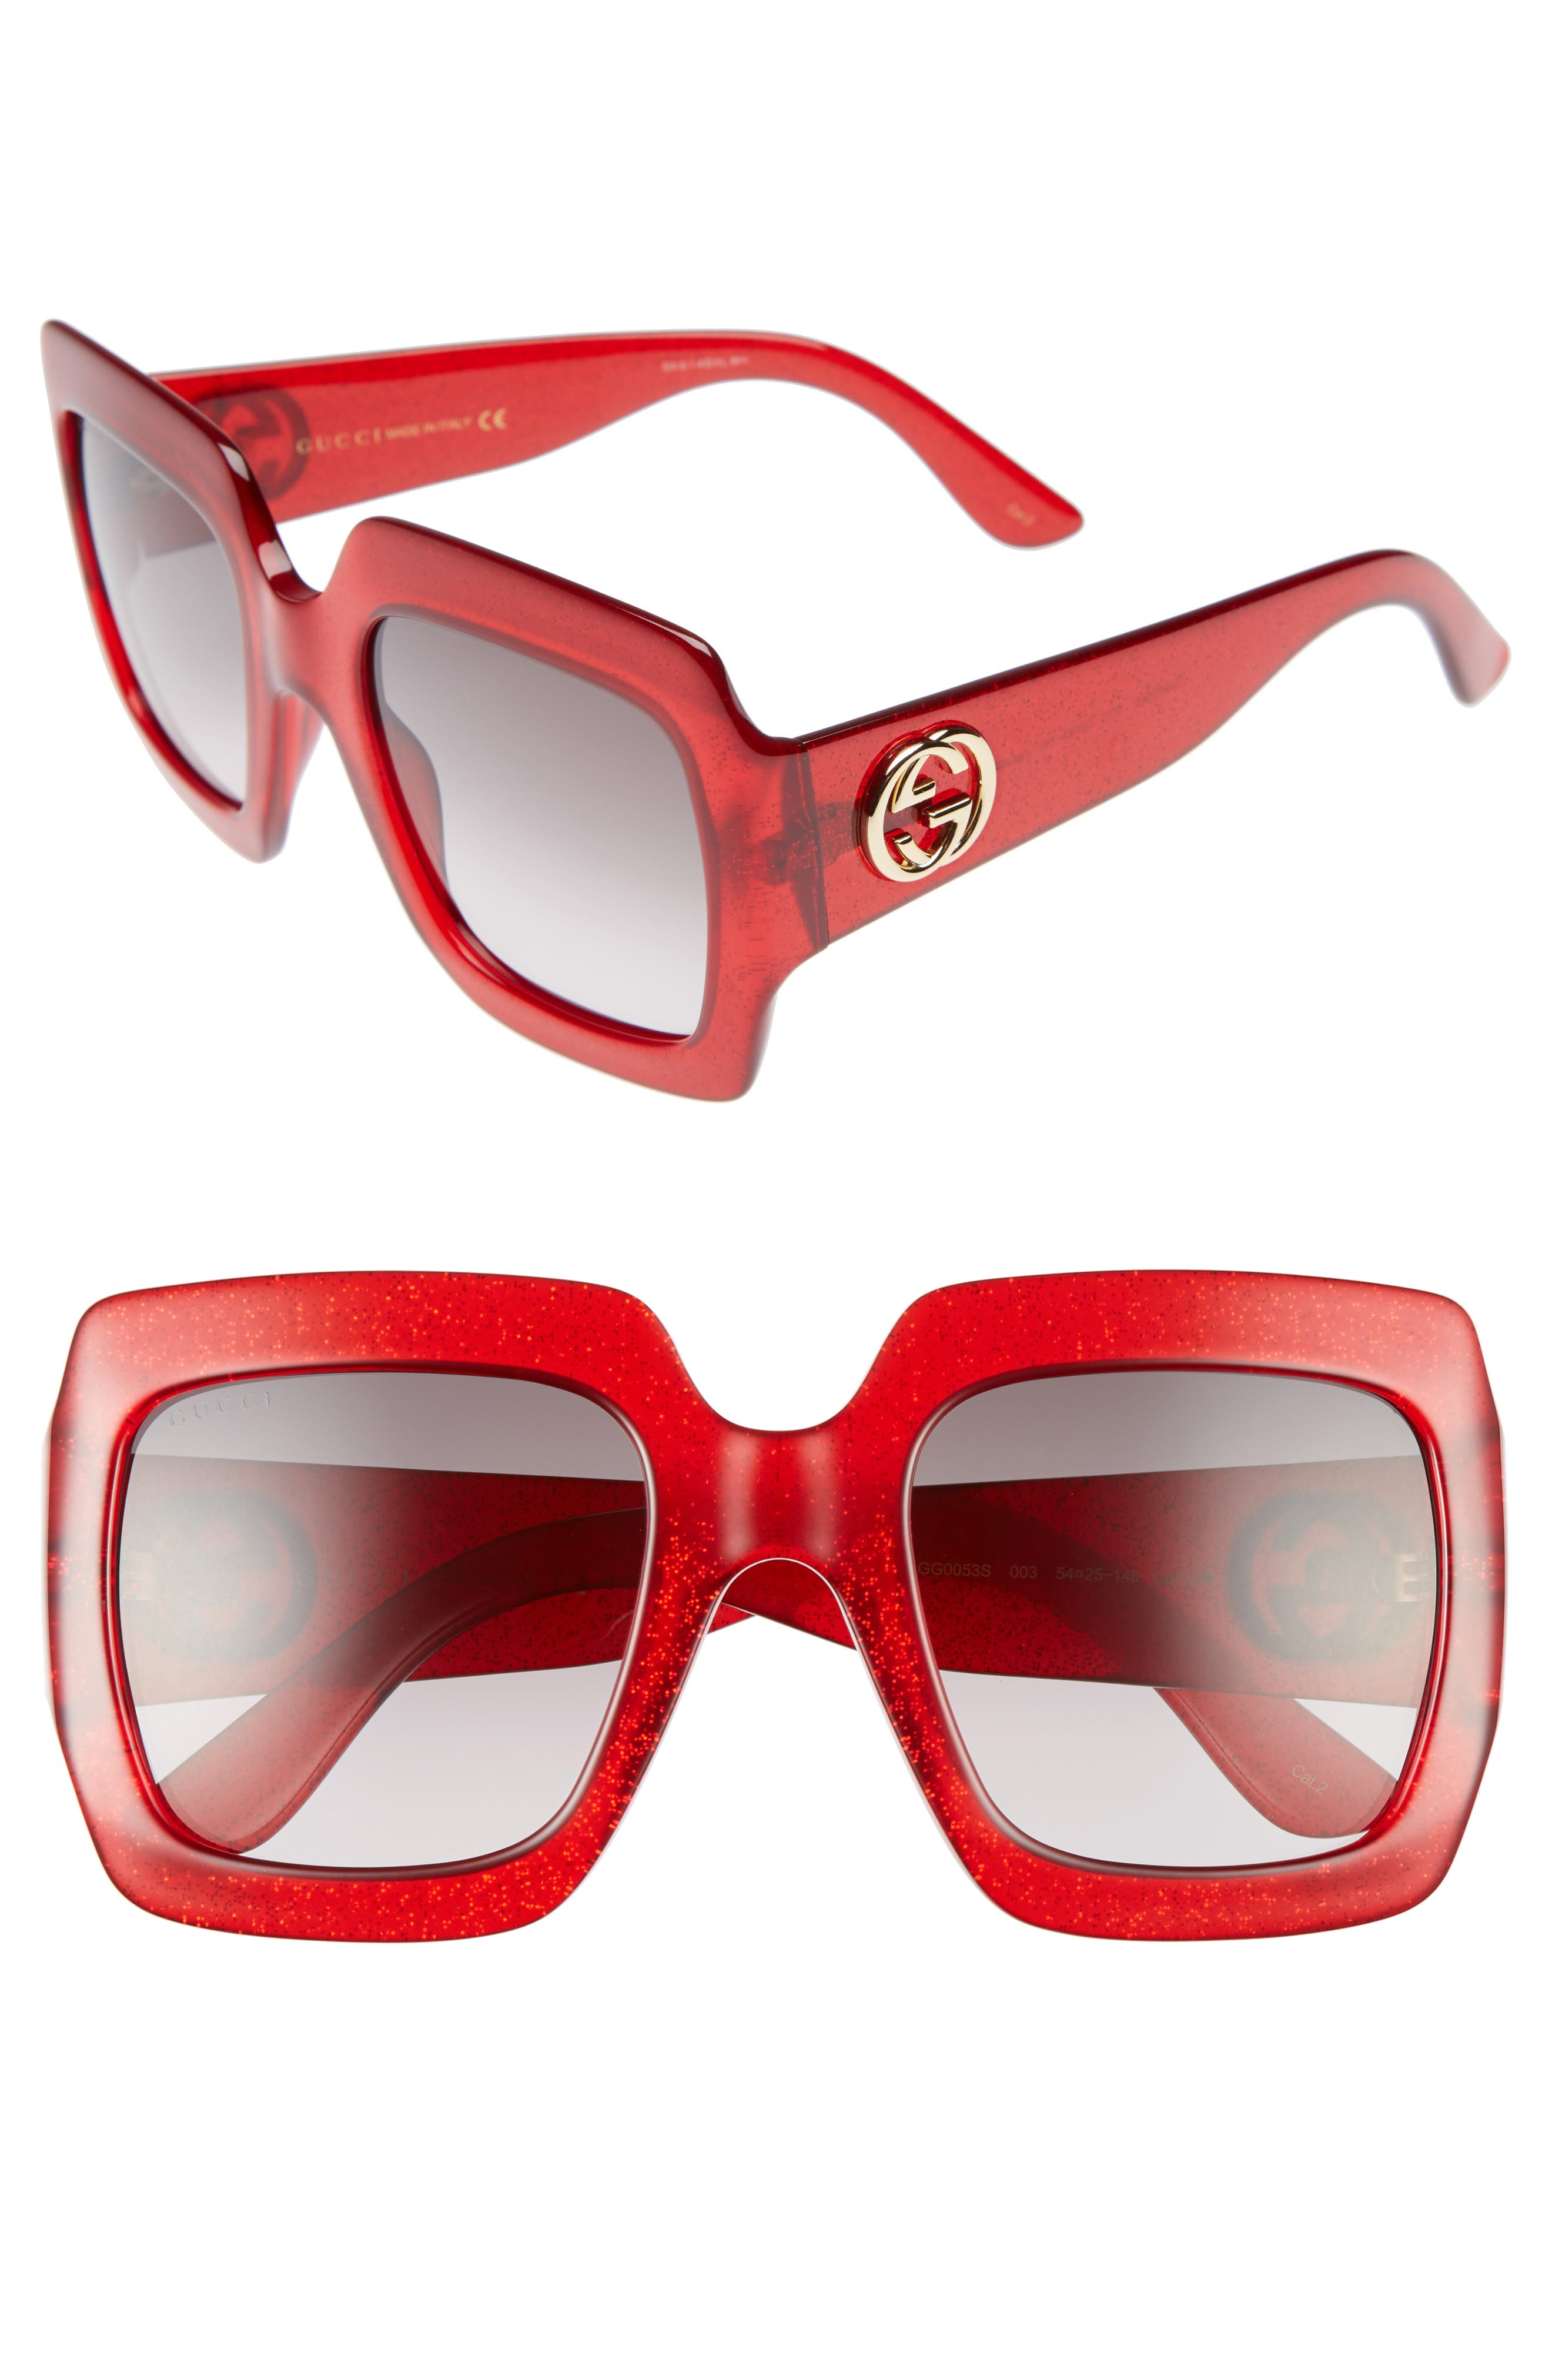 Alternate Image 1 Selected - Gucci 54mm Square Sunglasses